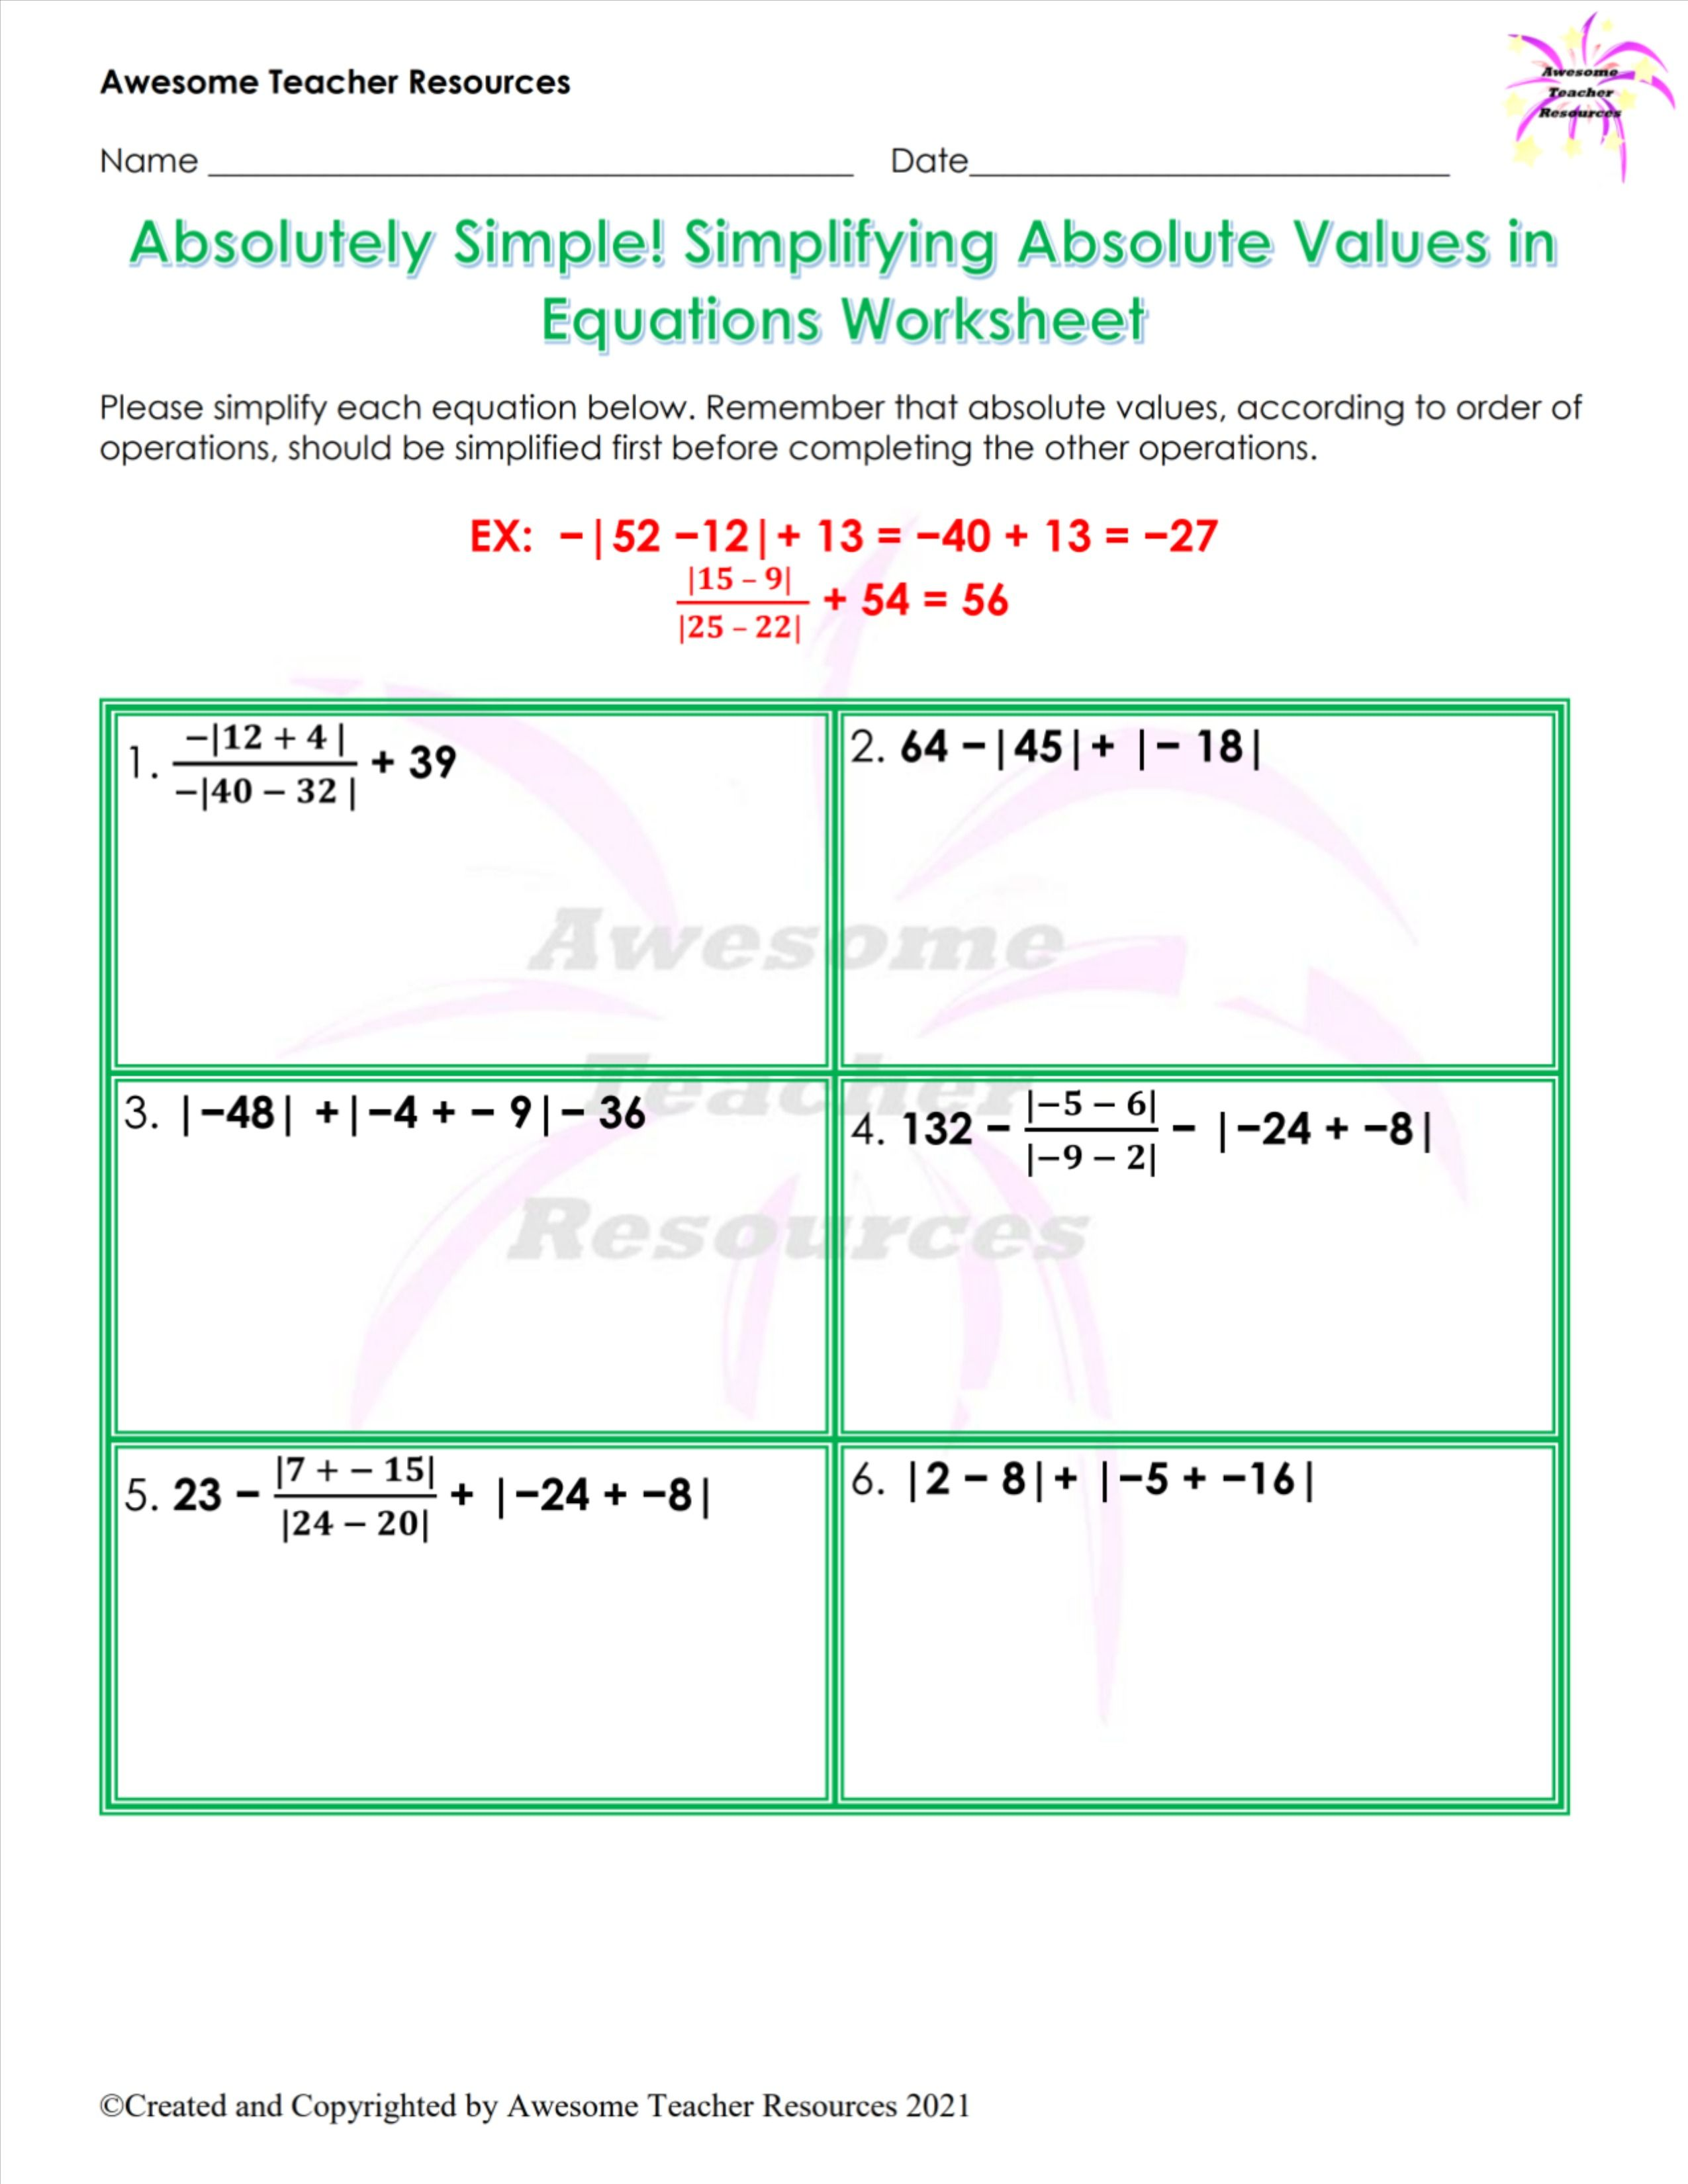 Absolutely Simple Simplifying Absolute Values In Equations Worksheet 1 In 2021 Absolute Value Order Of Operations Equations